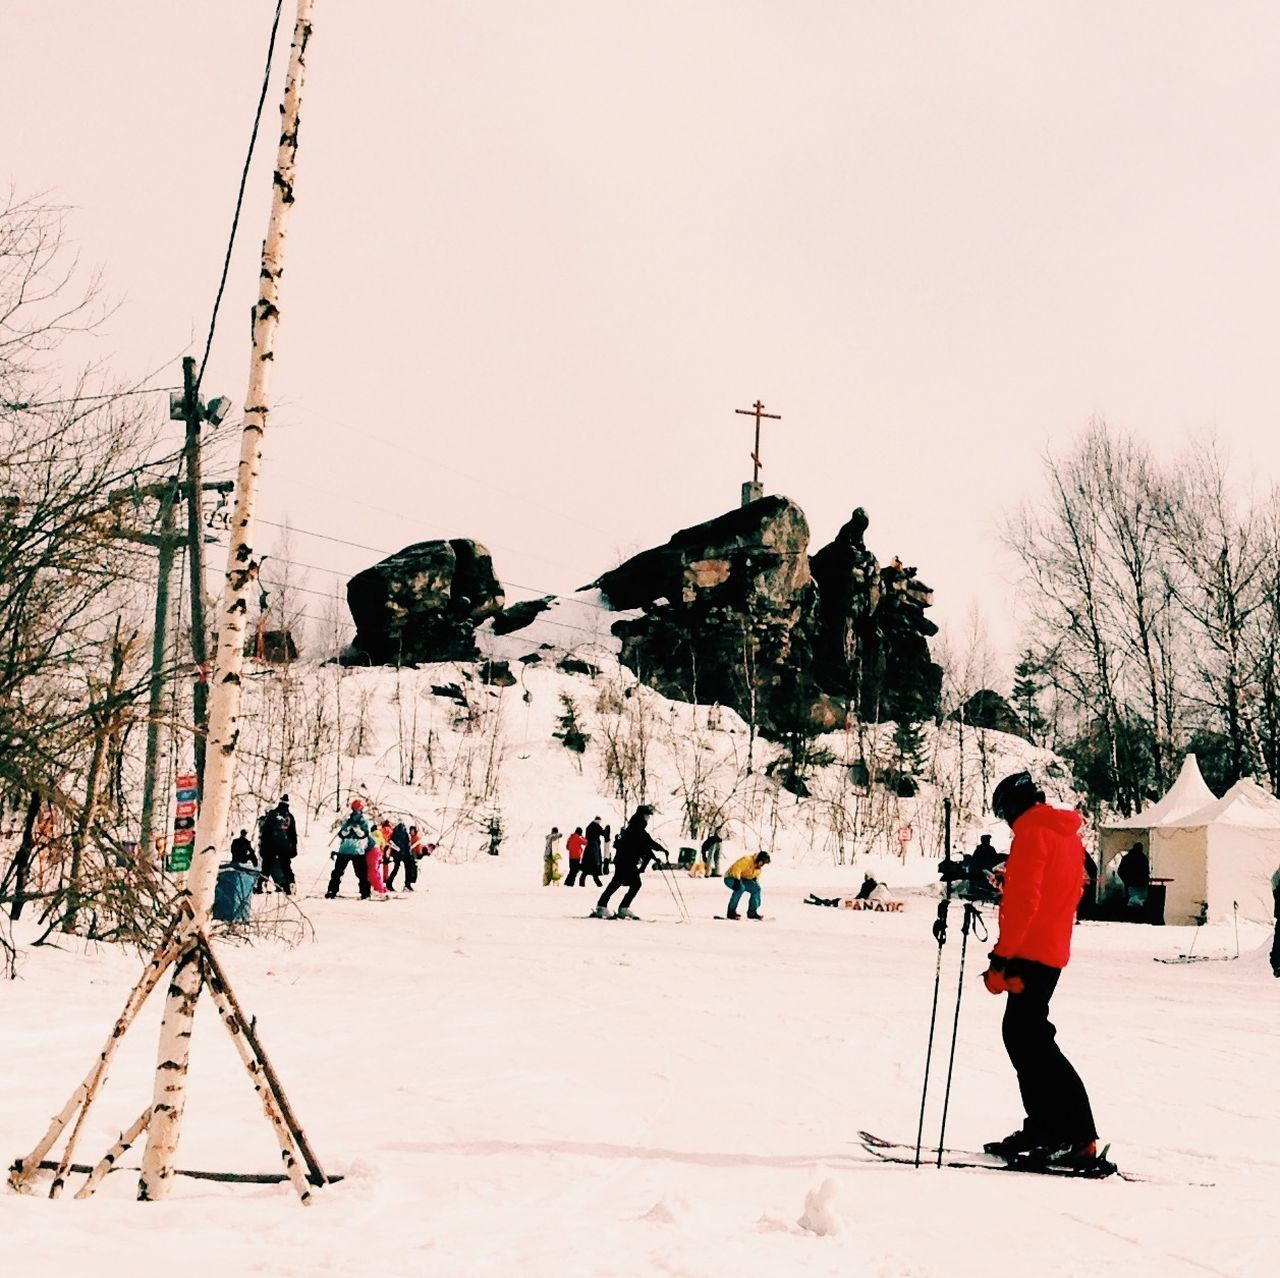 People Skiing On Snowy Mountain Against Sky